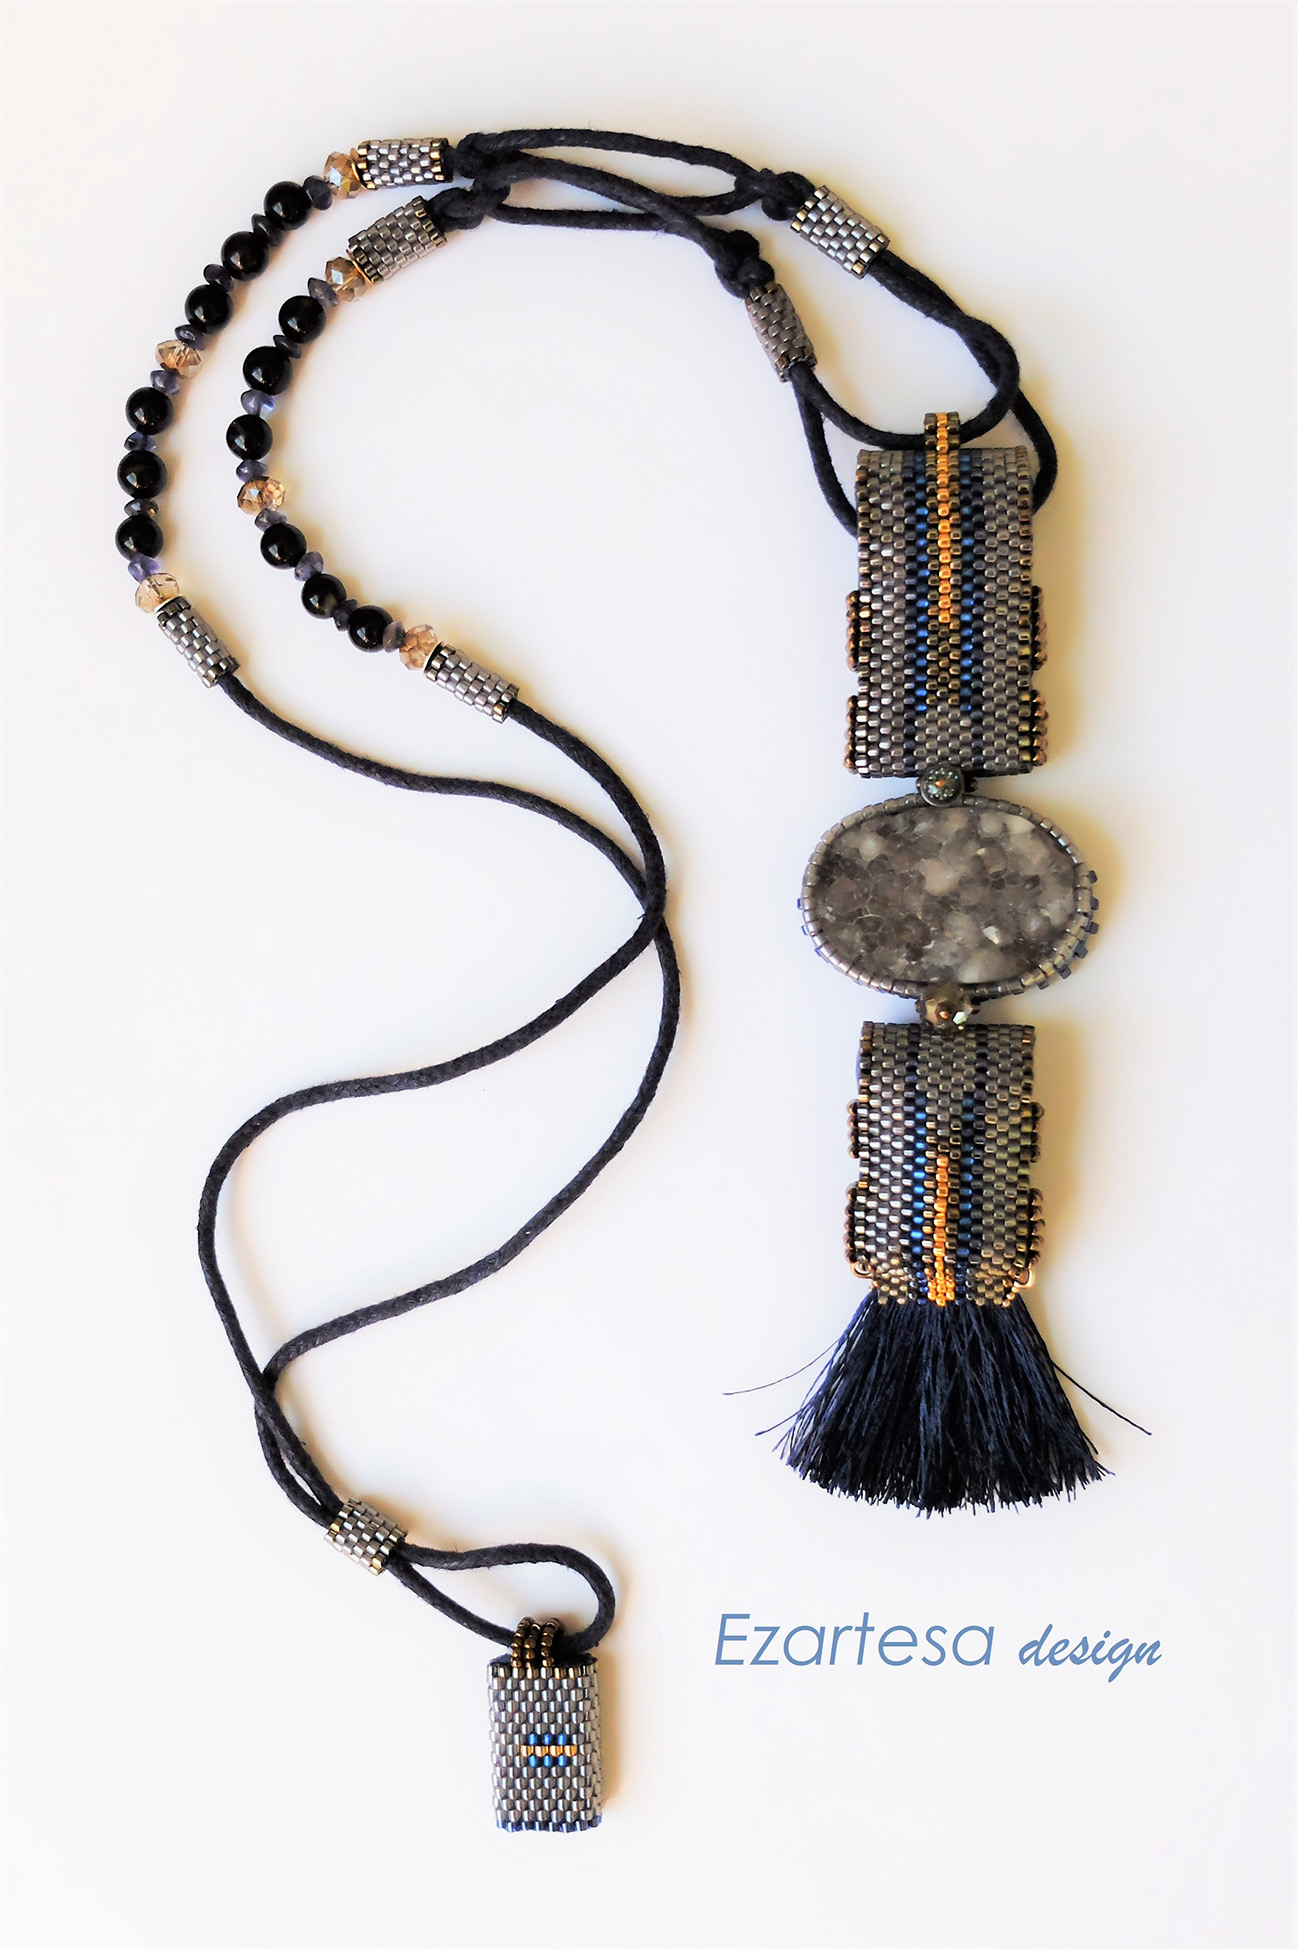 2015 2016 Fall And Winter Bohemian Seed Bead Jewelry Collection By